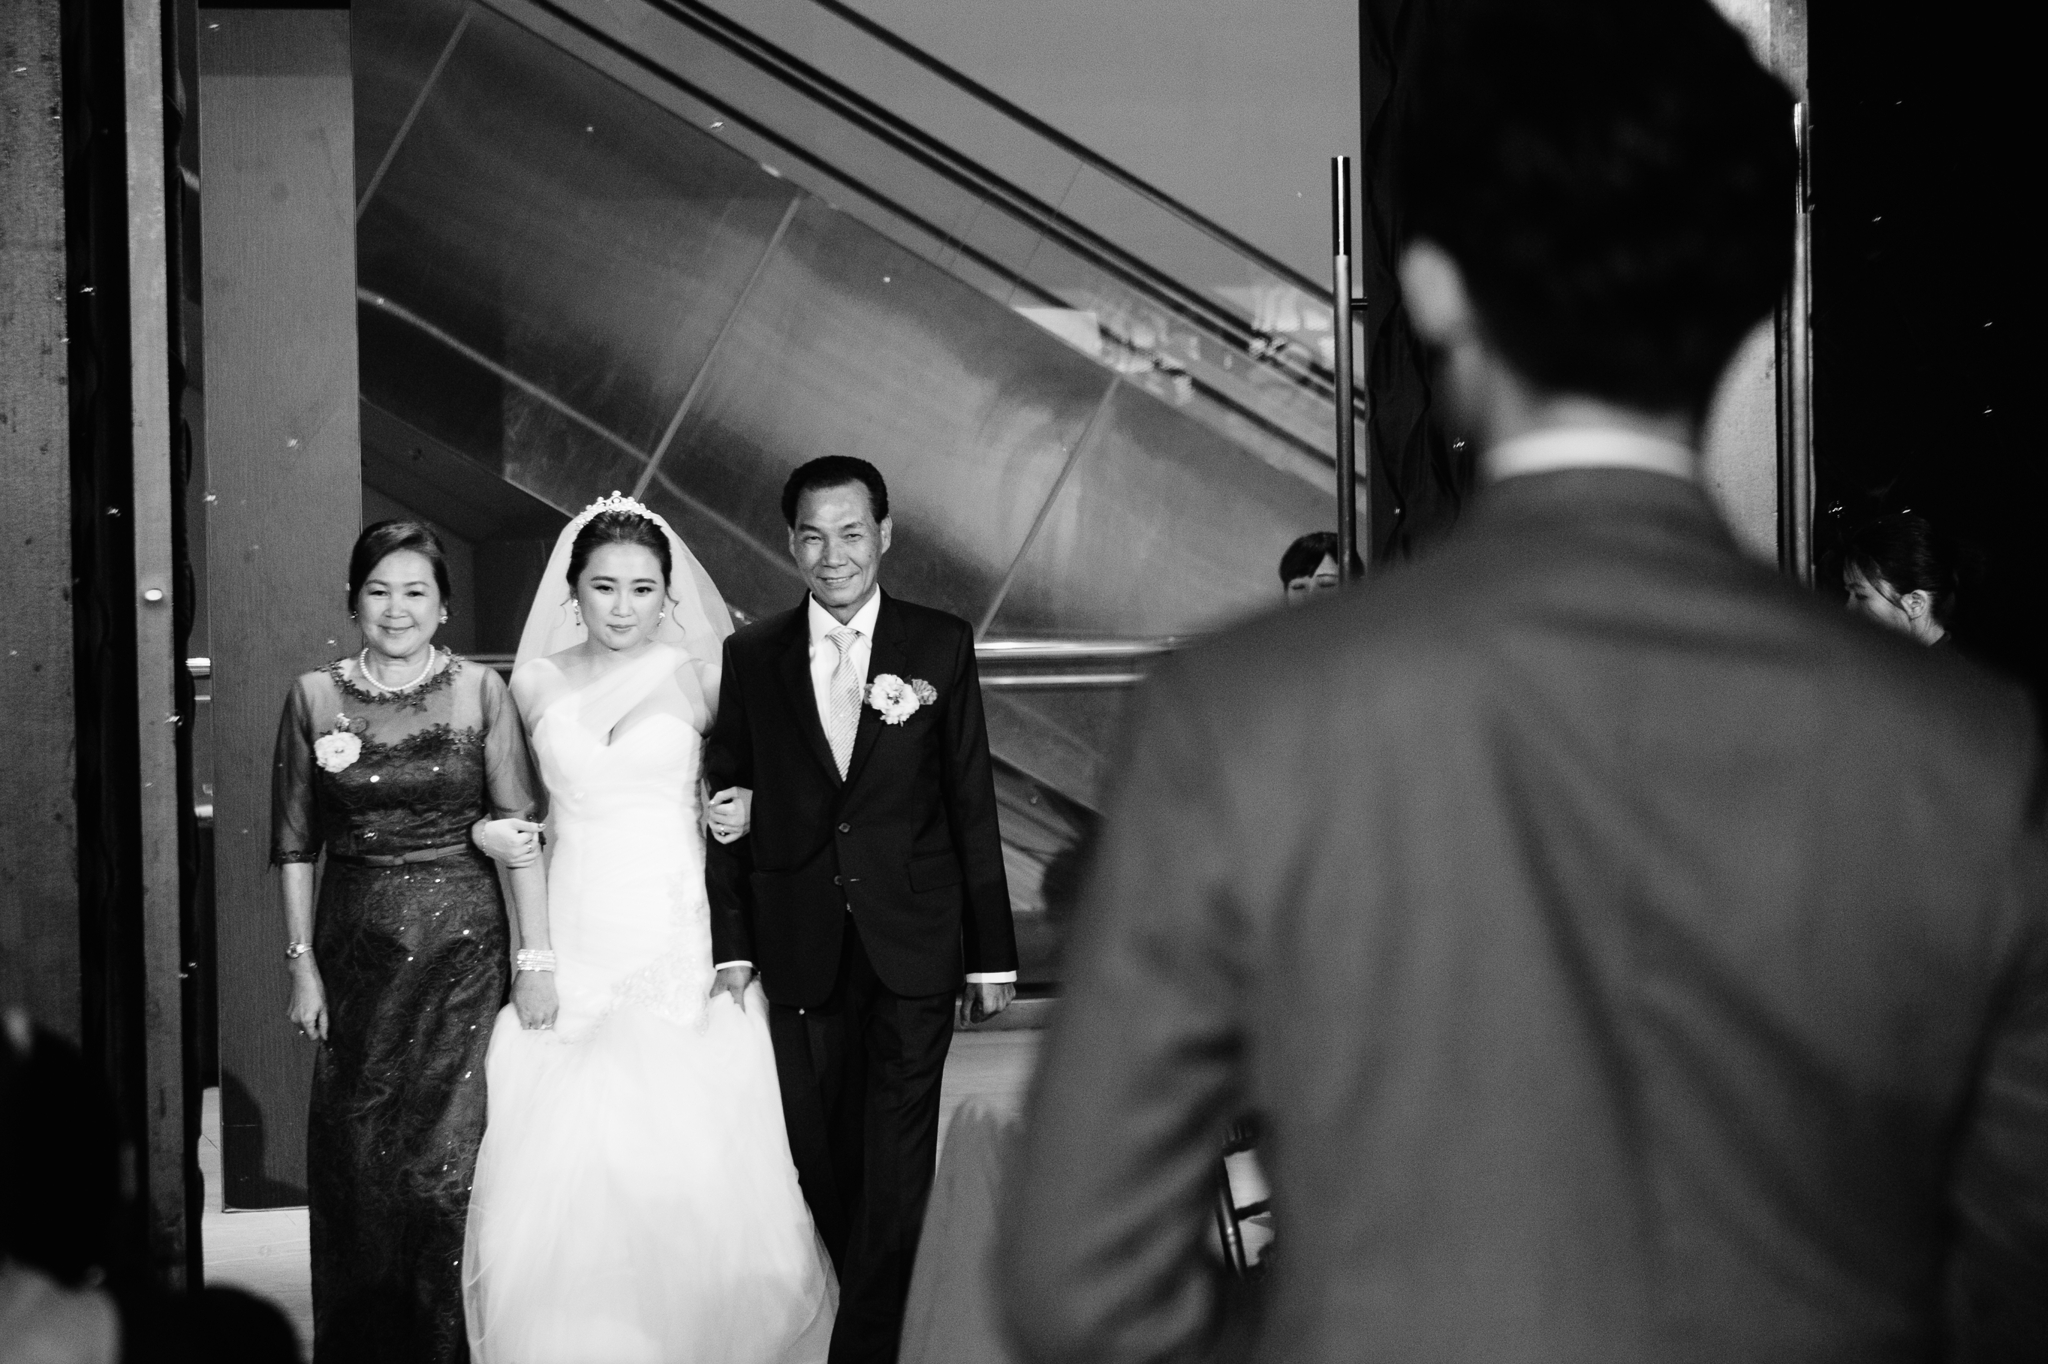 Keddy+Richard-wedding-新莊頤品飯店-178.jpg